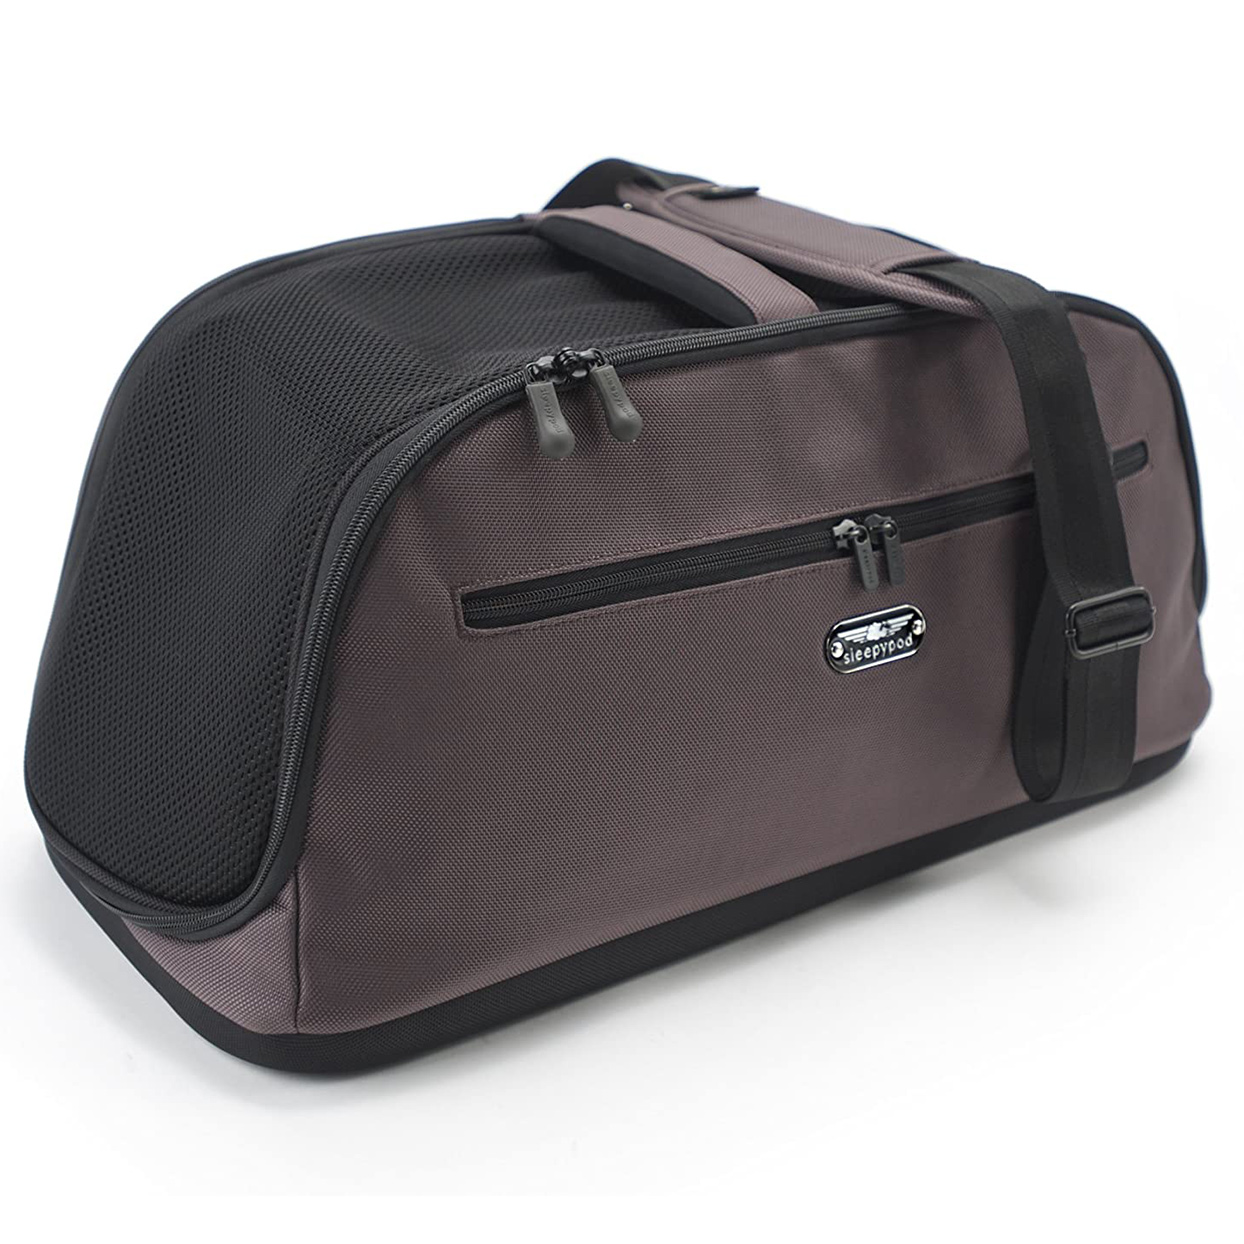 Sleepypod Air in-Cabin Pet Carrier on a white background